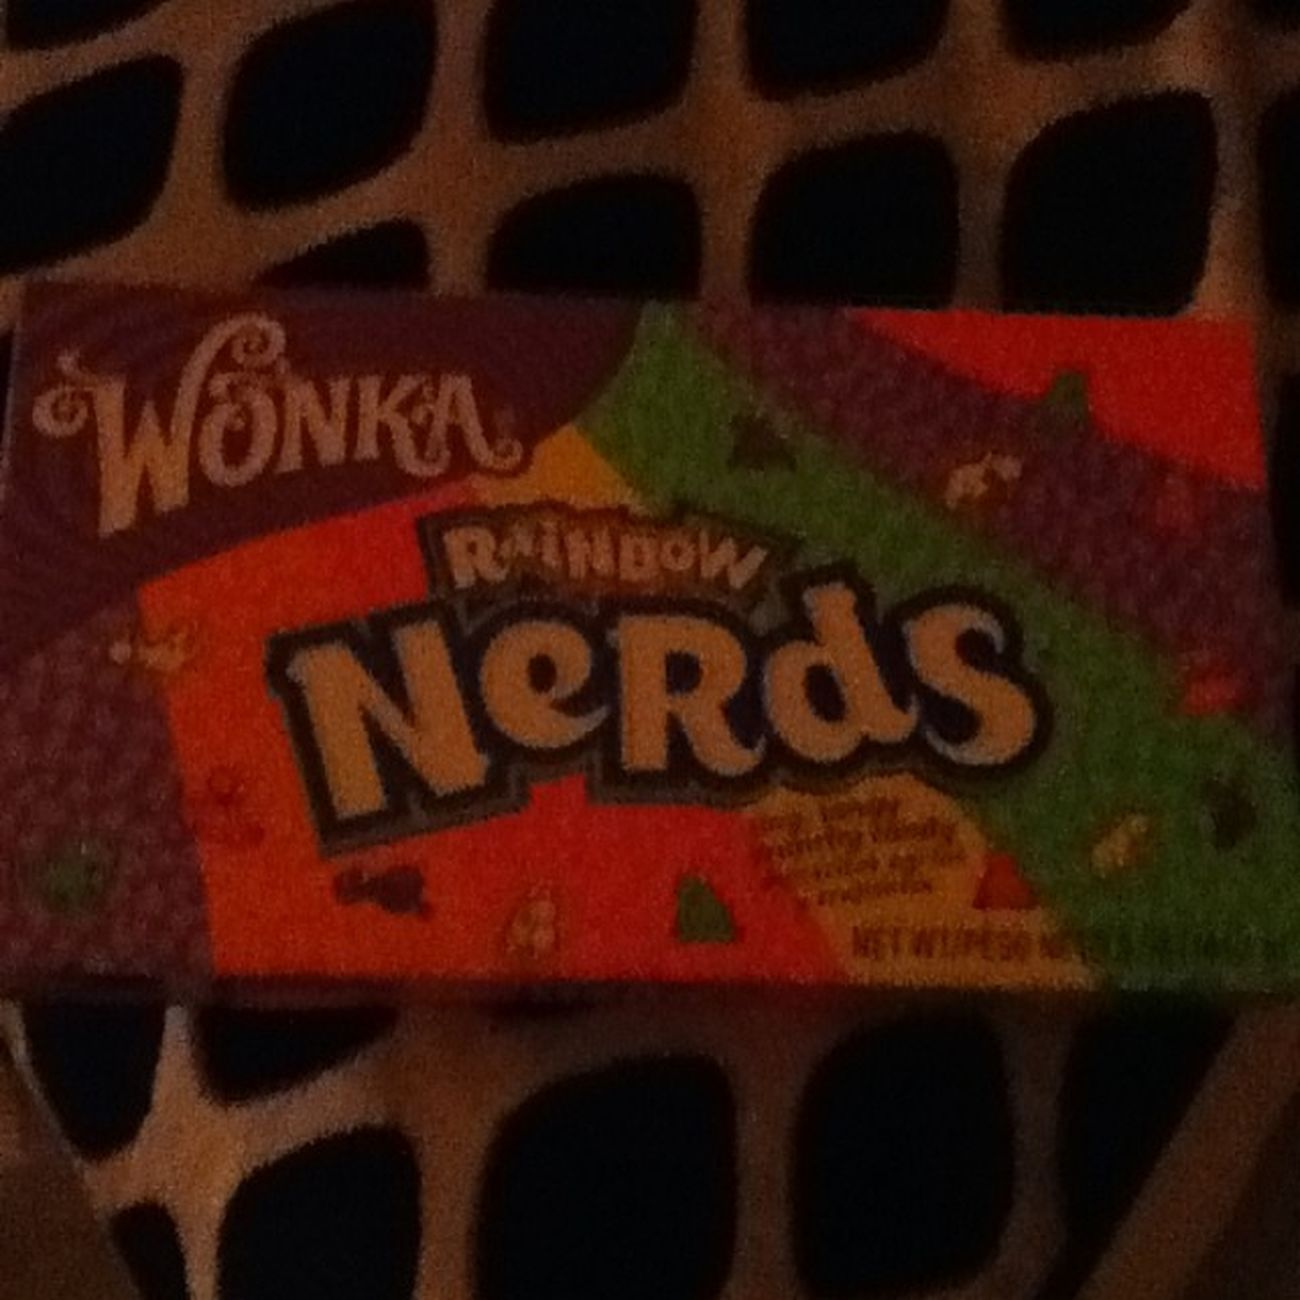 Wonka Rainbow Nerds!<3 Wonka Nerds WonkaRainbowNerds Yumm Lush Sweets Candy L4l Like L4like Likeit Like4like T4l Tag4l Tag4like Follow Followme Likeit Loveit Goood Like Follow Muchlove